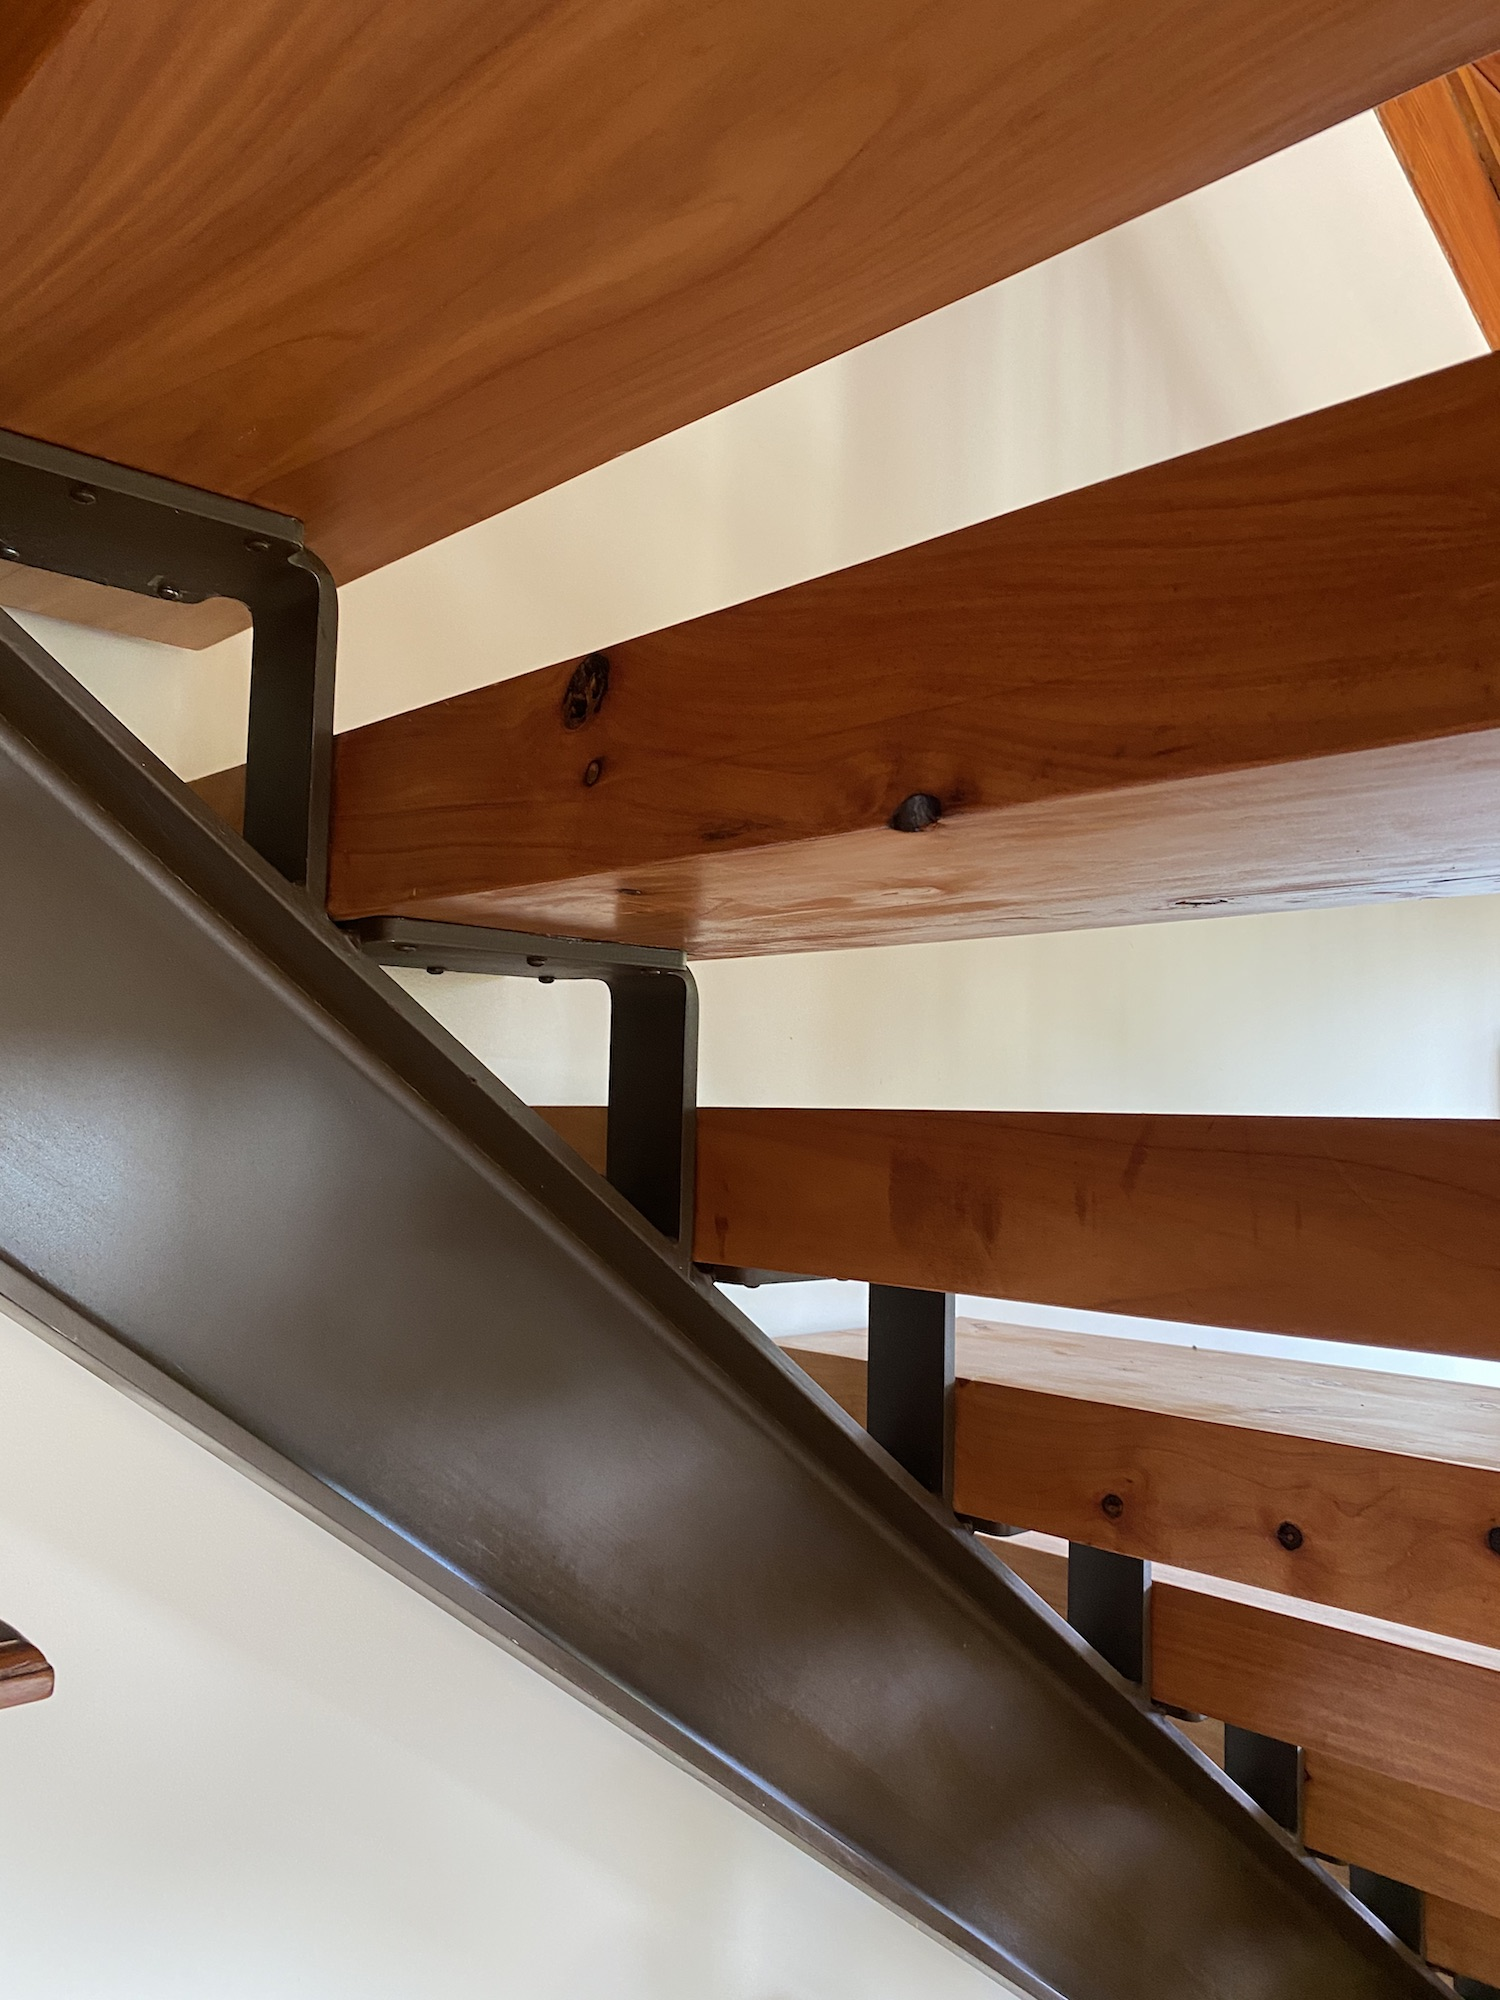 Thick wood used for staircase with steel frame for support